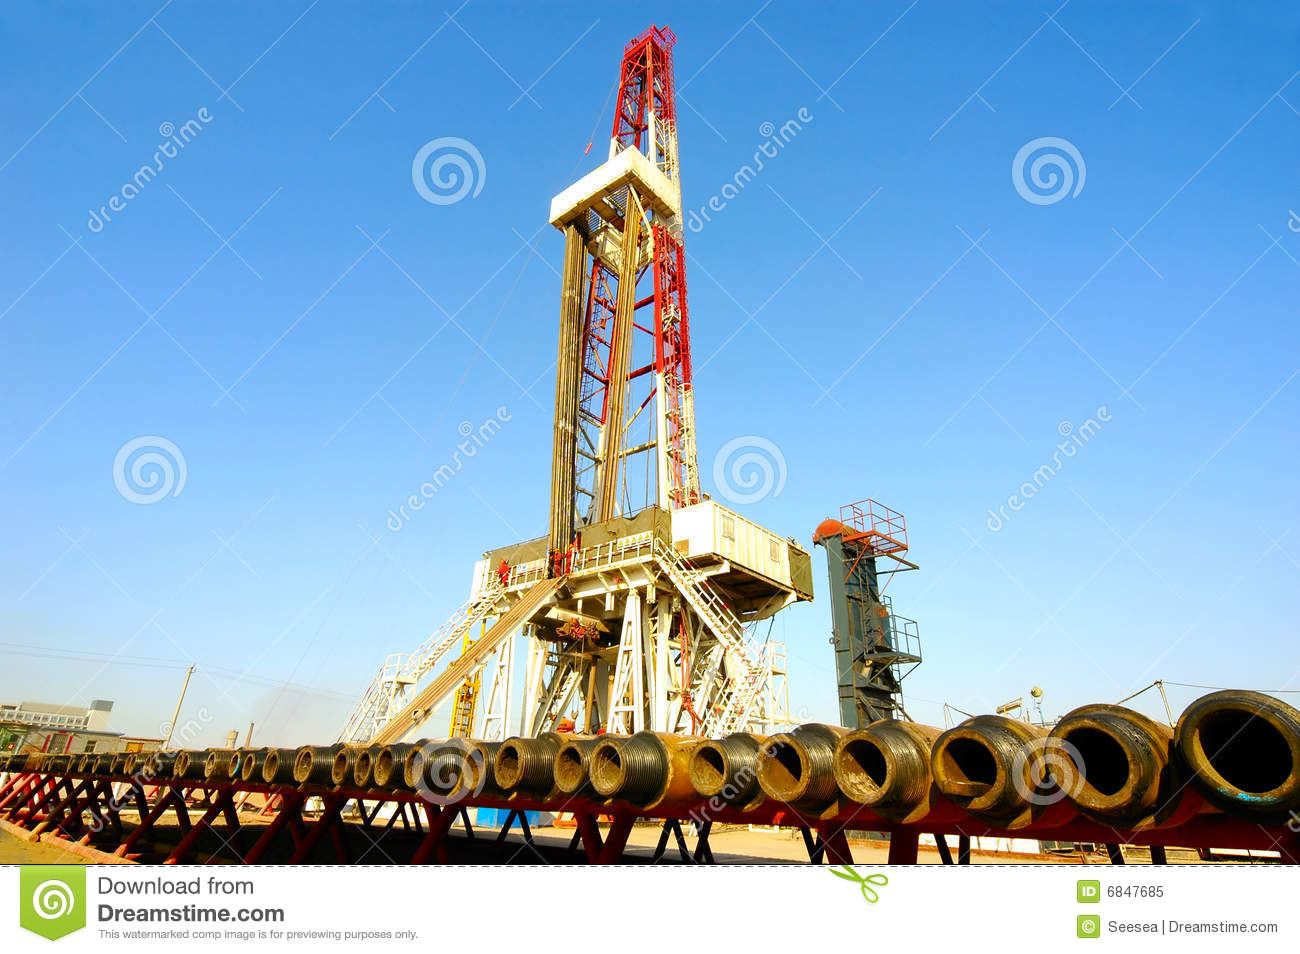 Land Drilling Rig Royalty Free Stock Photo   Image  6847685